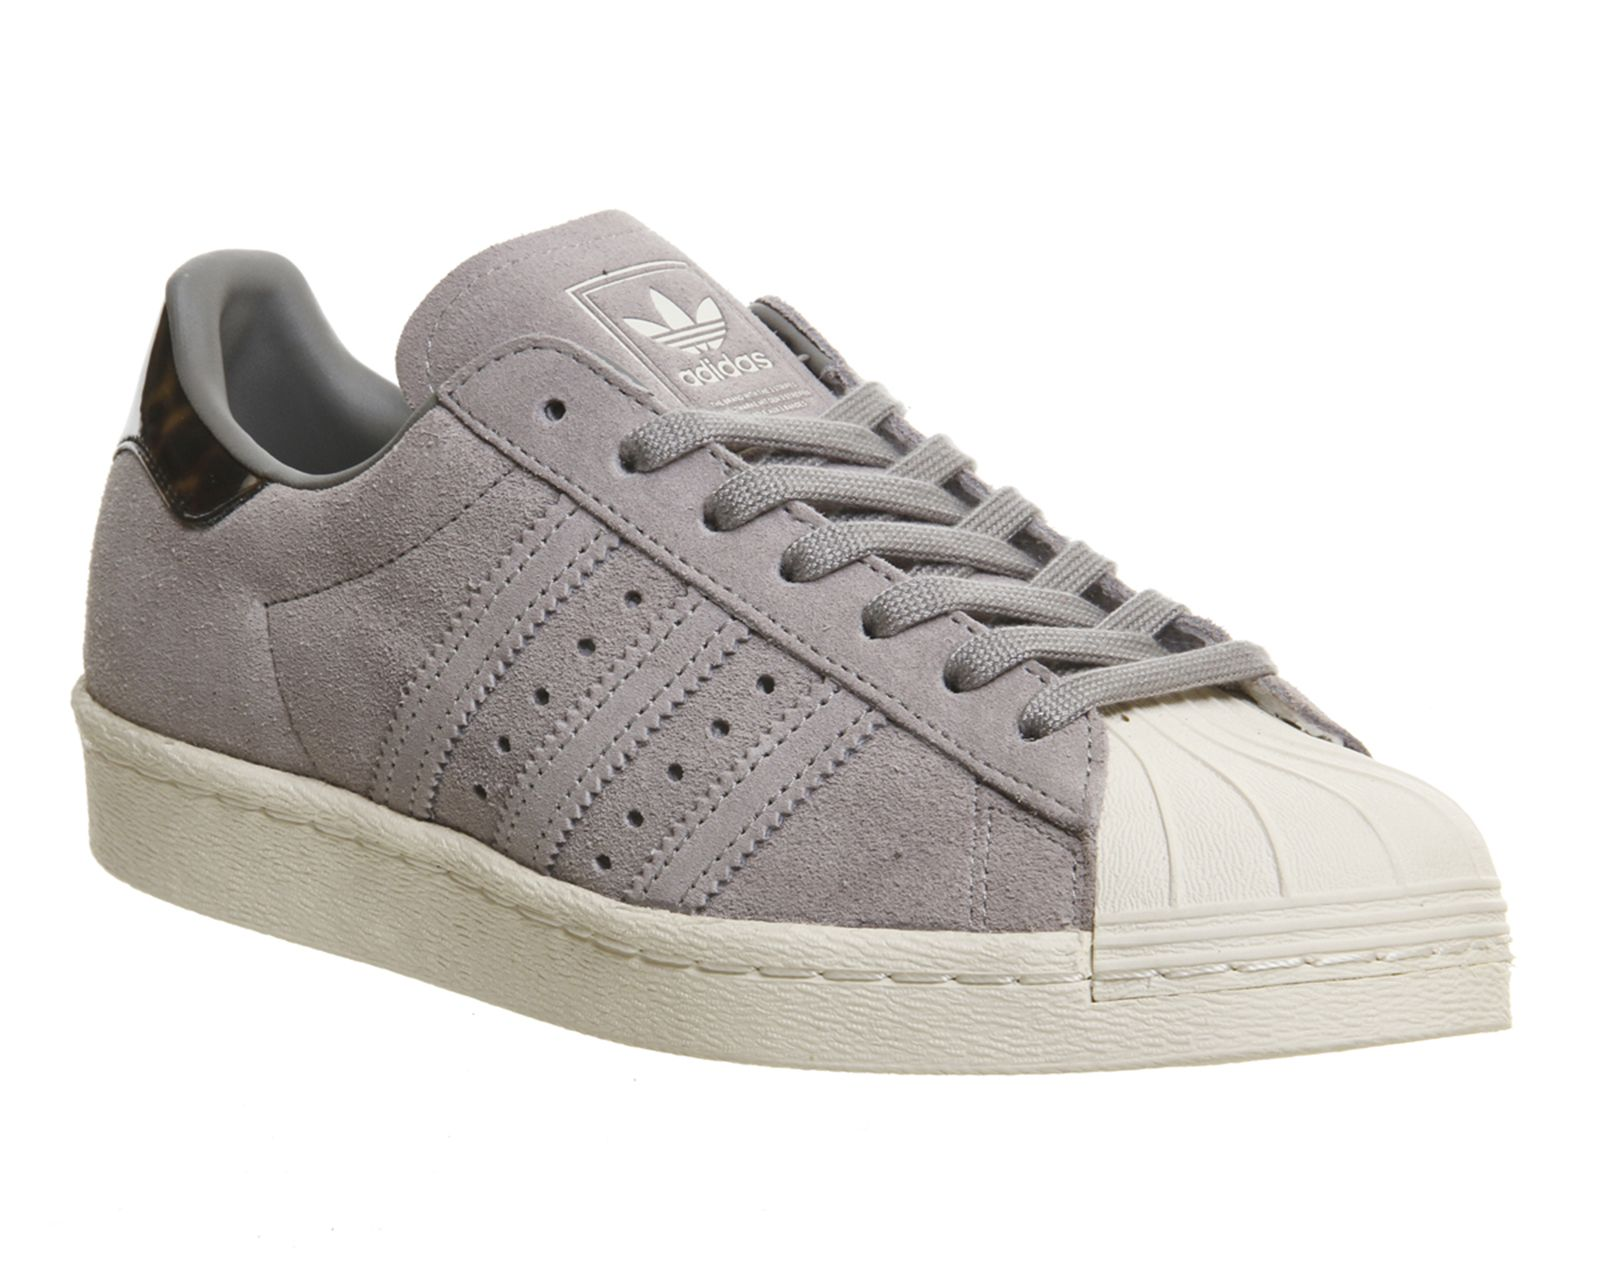 Adidas Superstar 80s Solid Grey Tortoise Shell - Unisex Sports